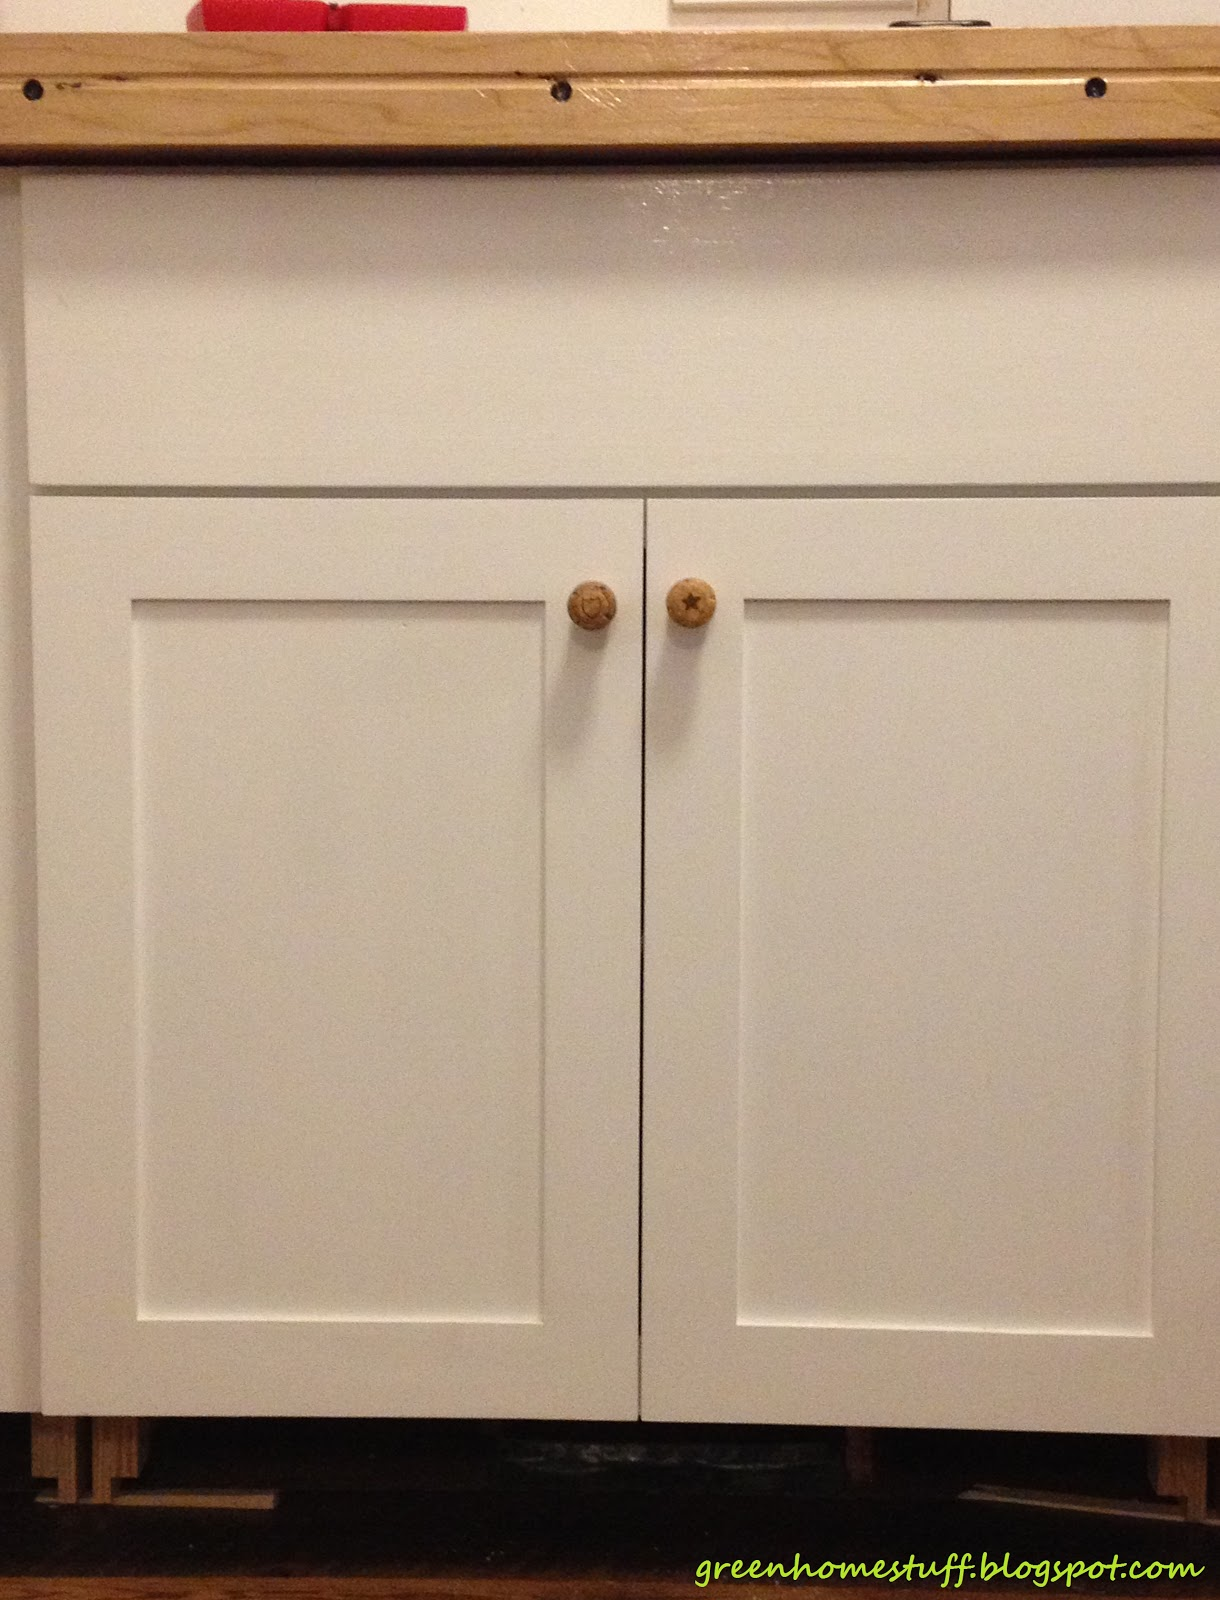 Pictures of Door Knobs On Kitchen Cabinets